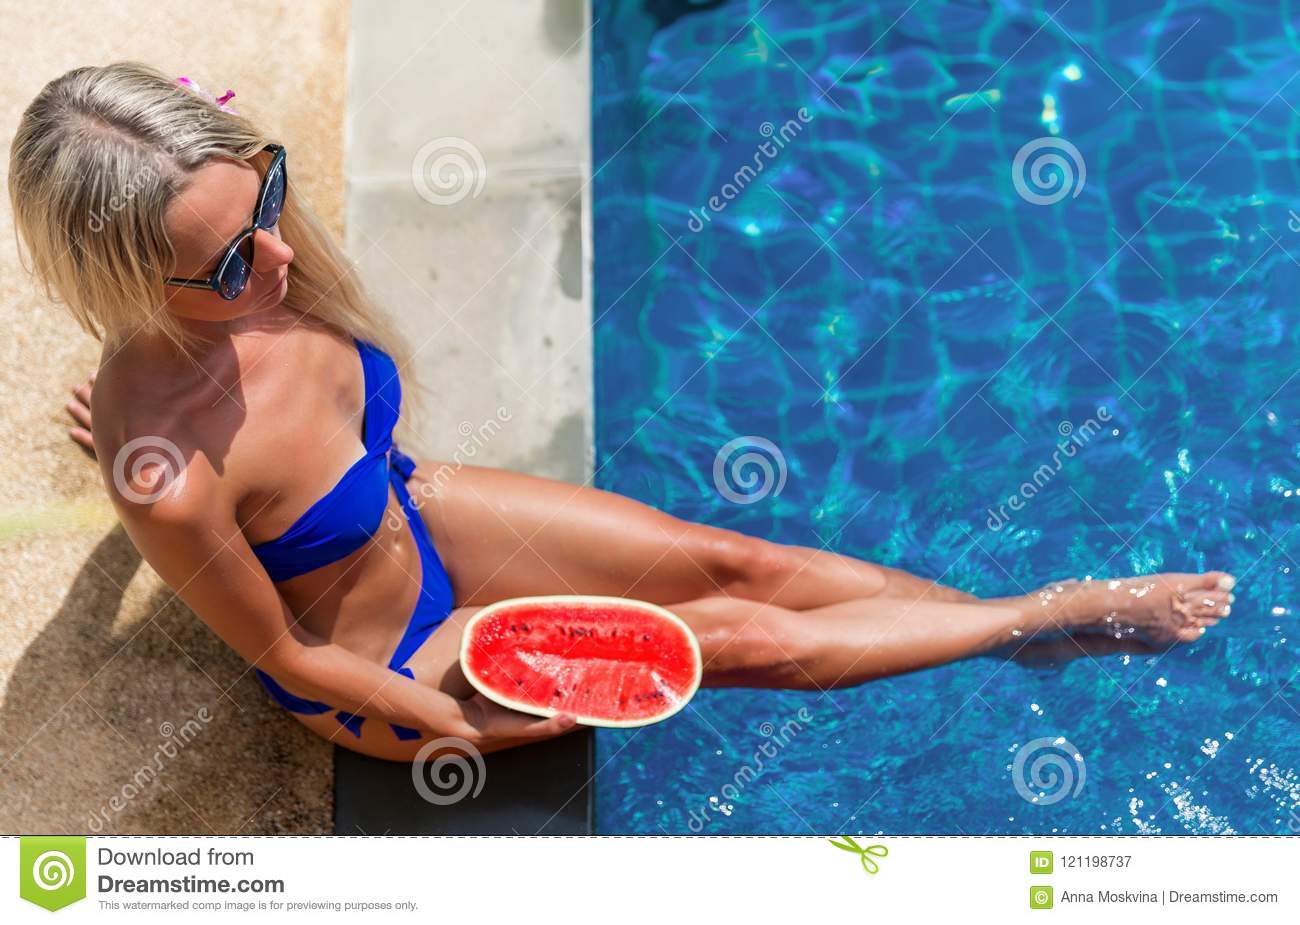 Young Slim Blonde Woman With Long Hair In Sunglasses With Watermelon Sunbathing Near Swimming Pool Stock Image Image Of Summer Sunbathe 121198737